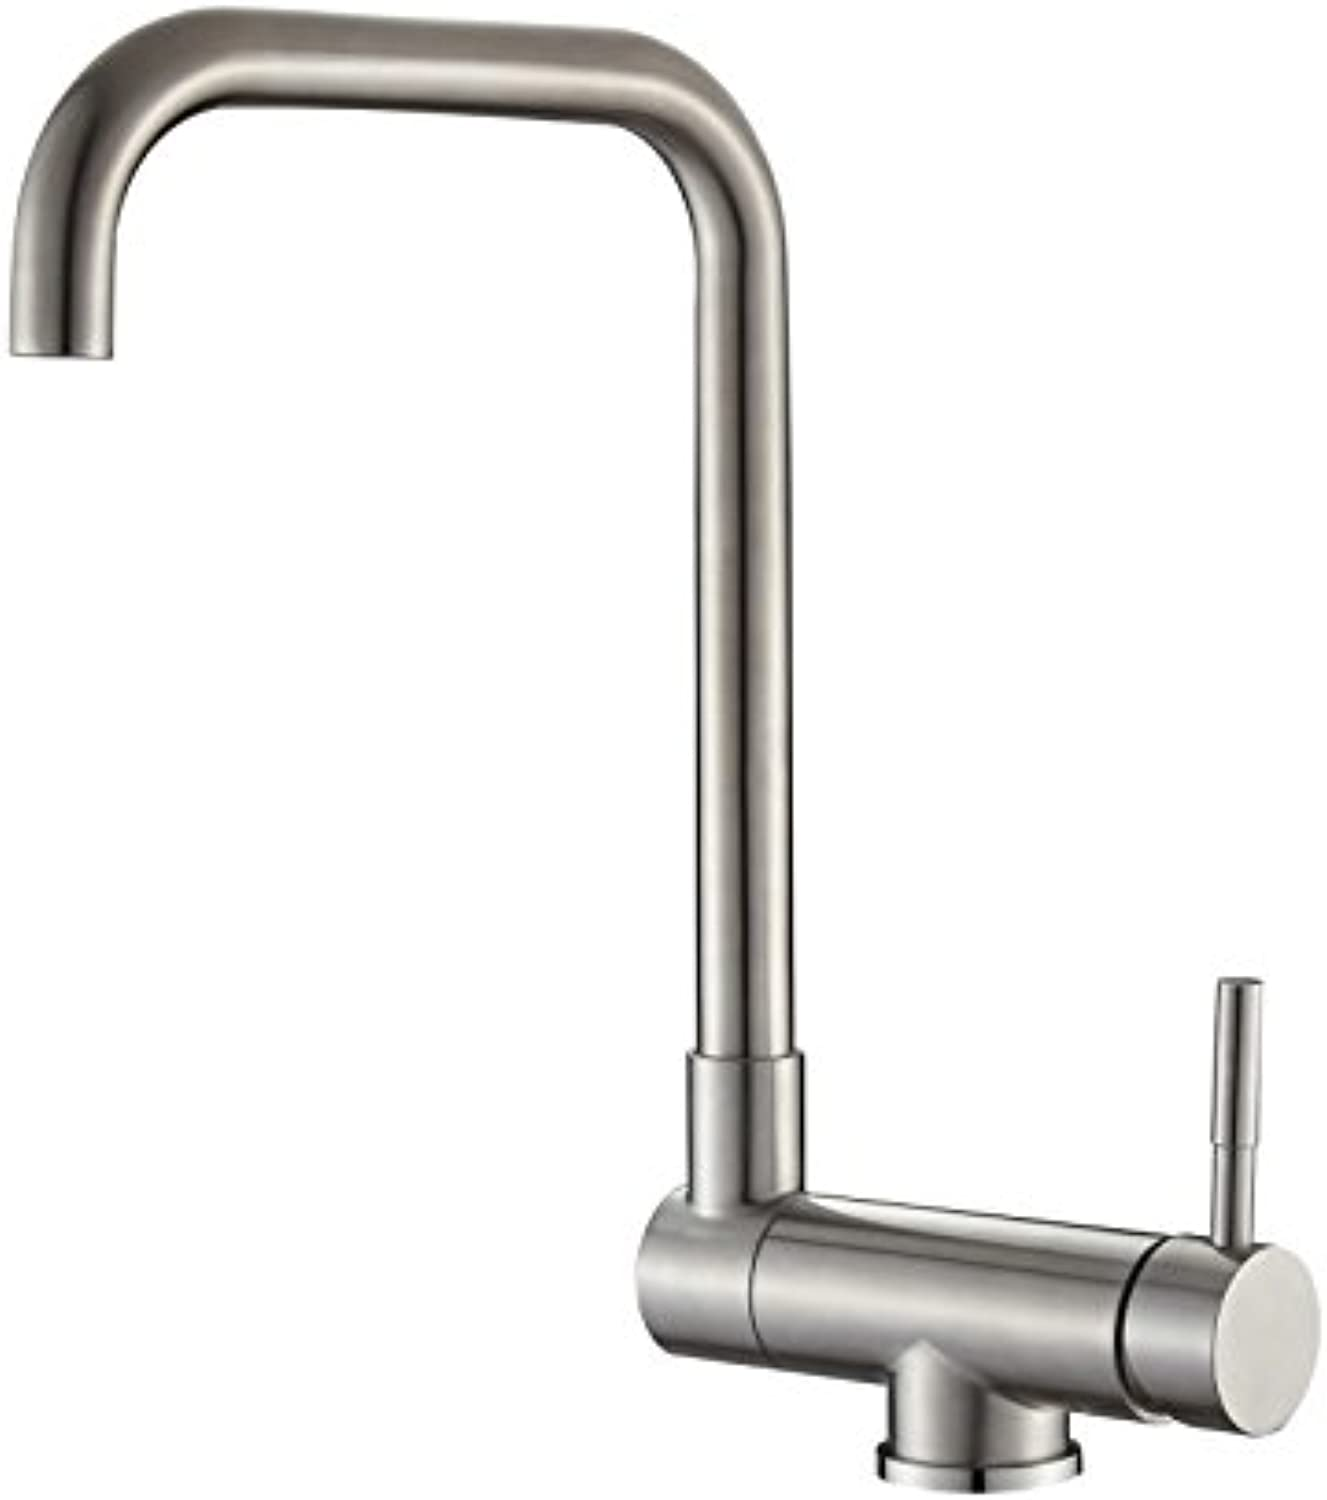 Mangeoo Folding redating Inner Window Kitchen Faucet 304 Stainless Steel Brushed Sink Sink Hot and Cold Water Faucet